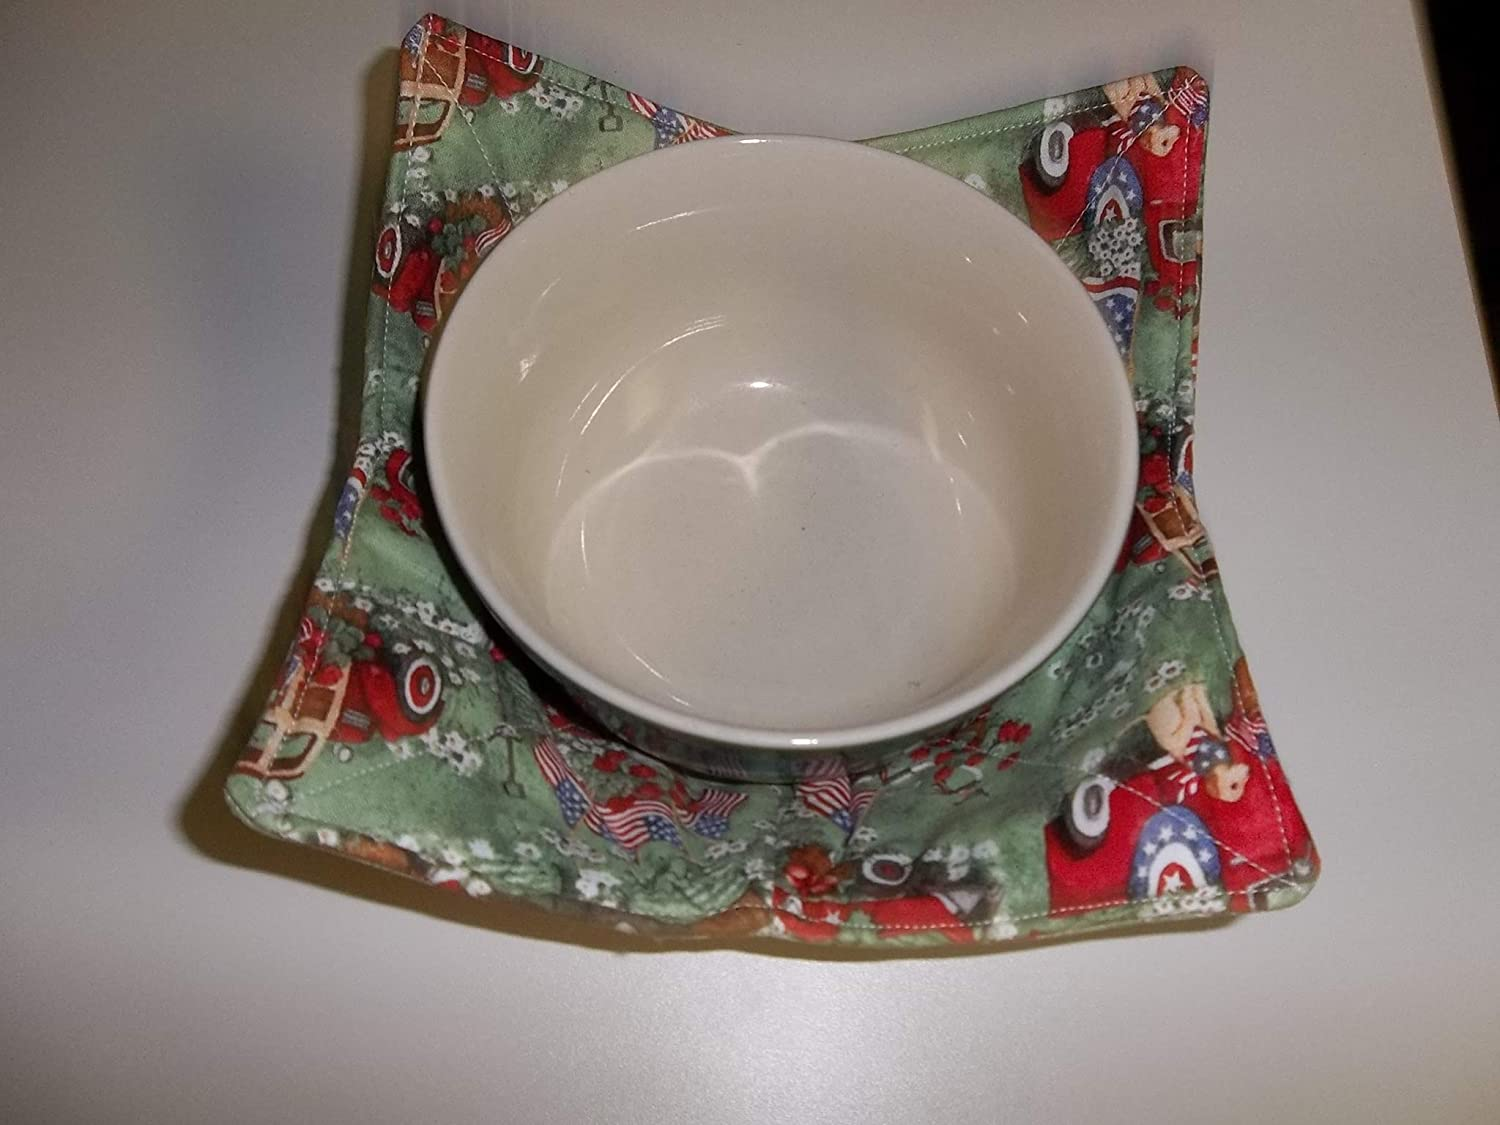 Microwave Bowl Raleigh Mall Cozy Cozies Patriotic Max 84% OFF Red 10 Inches Truck